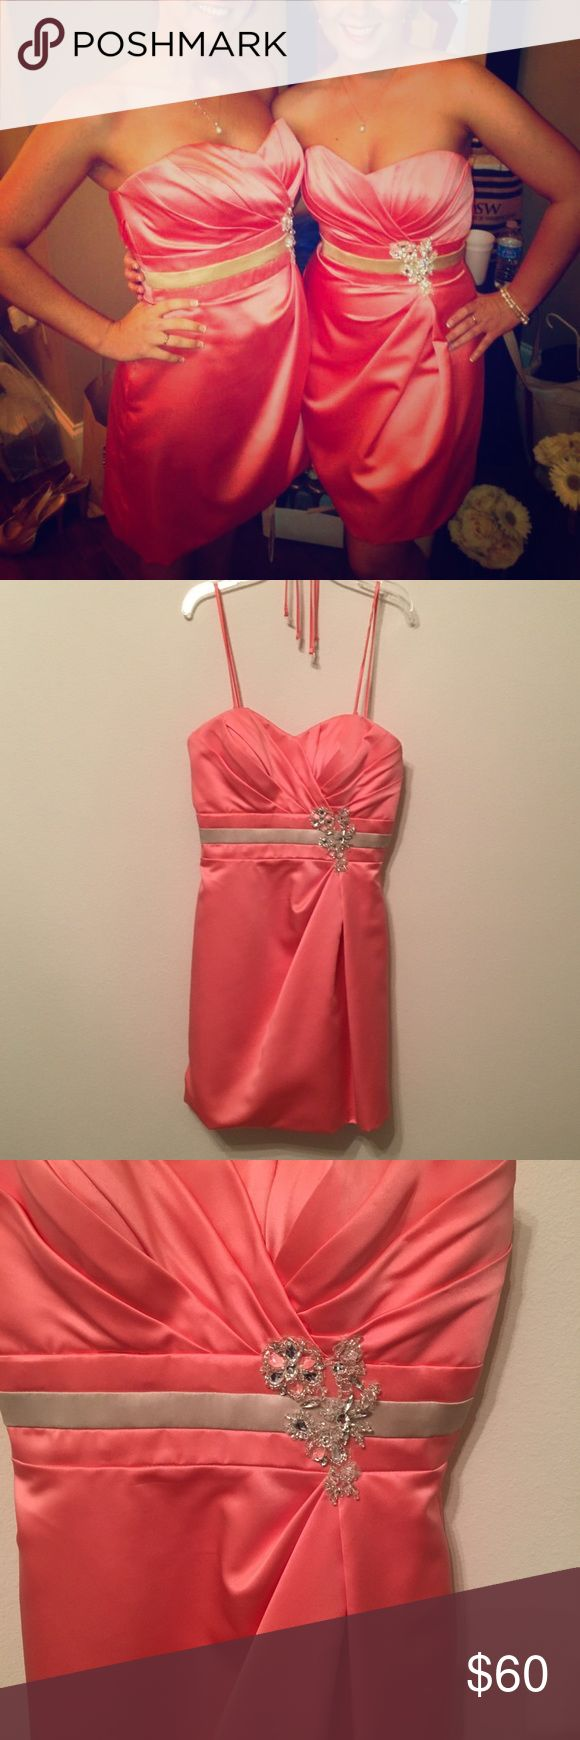 "Coral color bridesmaid dress worn once Strapless Coral colored bridesmaid dress with crystal beading embellishments  Worn once. Would make for cute prom dress.  Extra straps included.   Says size 6 but was altered to fit me.  I was about 5'2"" and 120lb at the time   Purchased from local/New Orleans bridal boutique. NOT a David's bridal Dresses Prom"